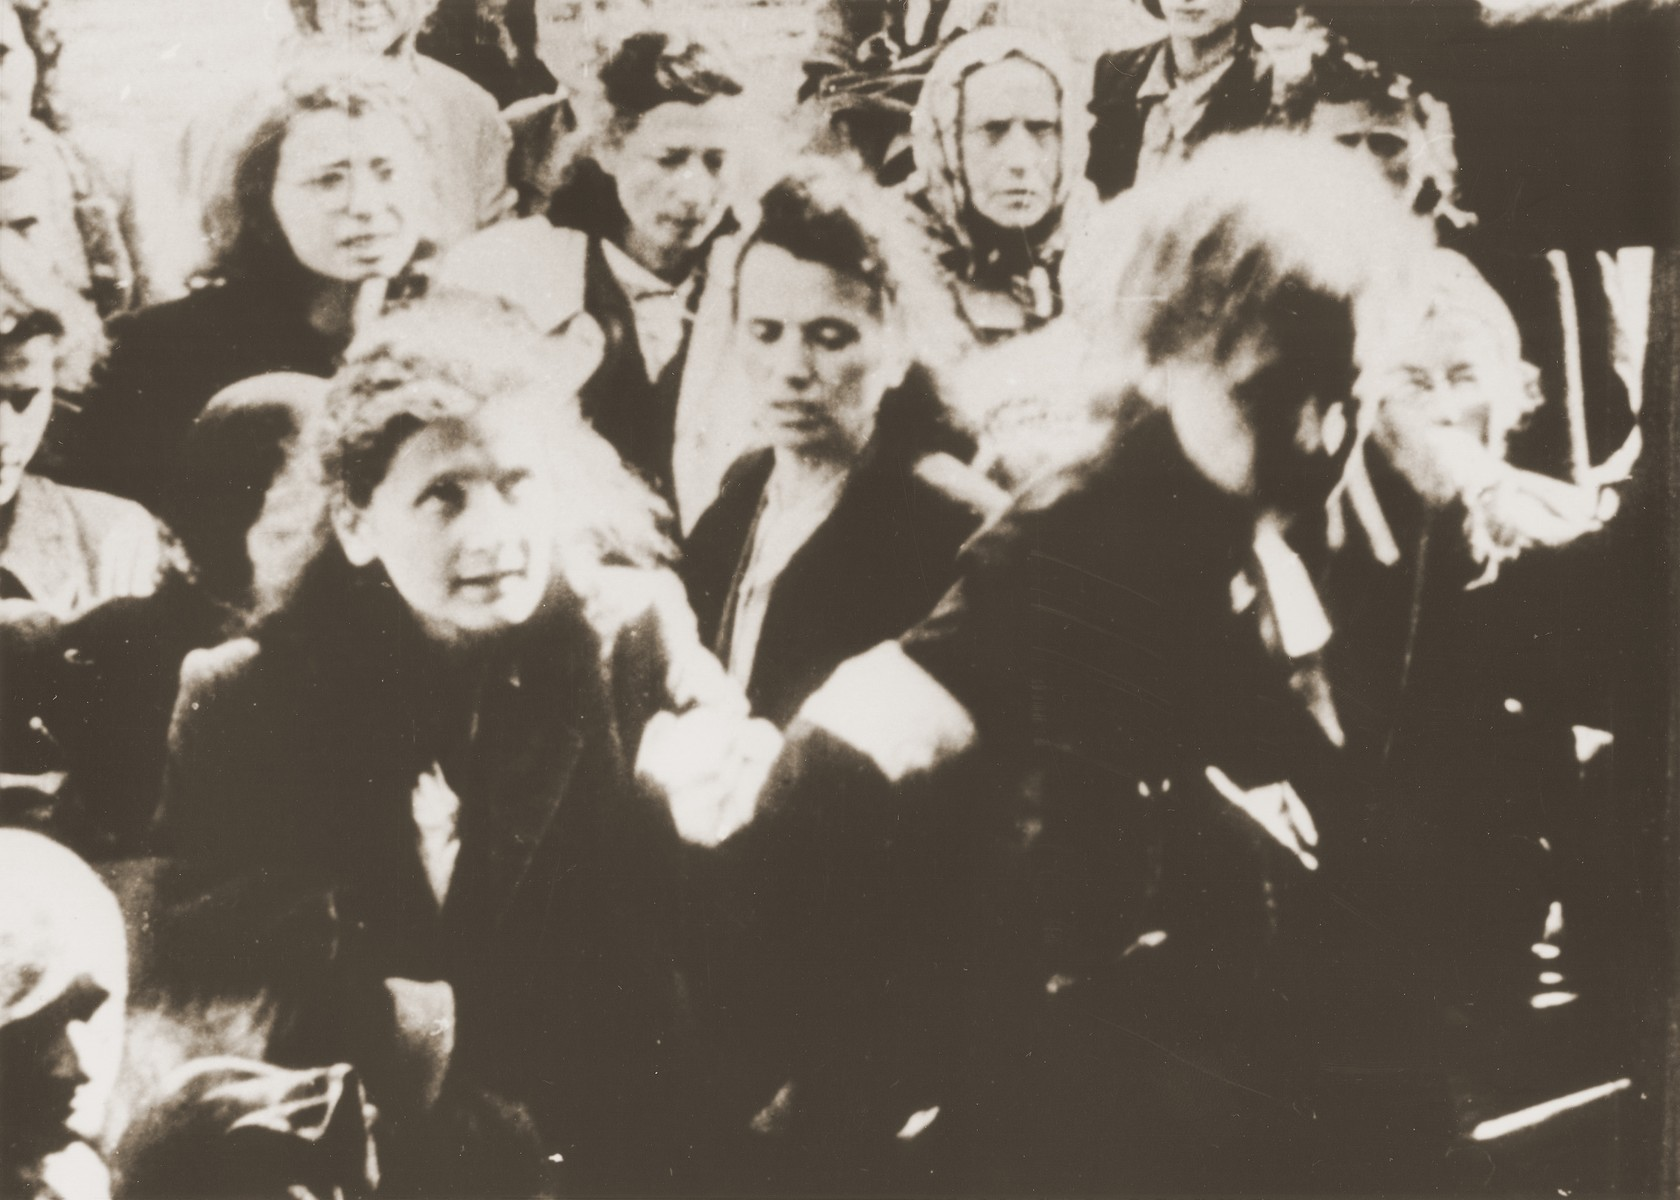 Jews on the platform during a deportation from the Warsaw ghetto.